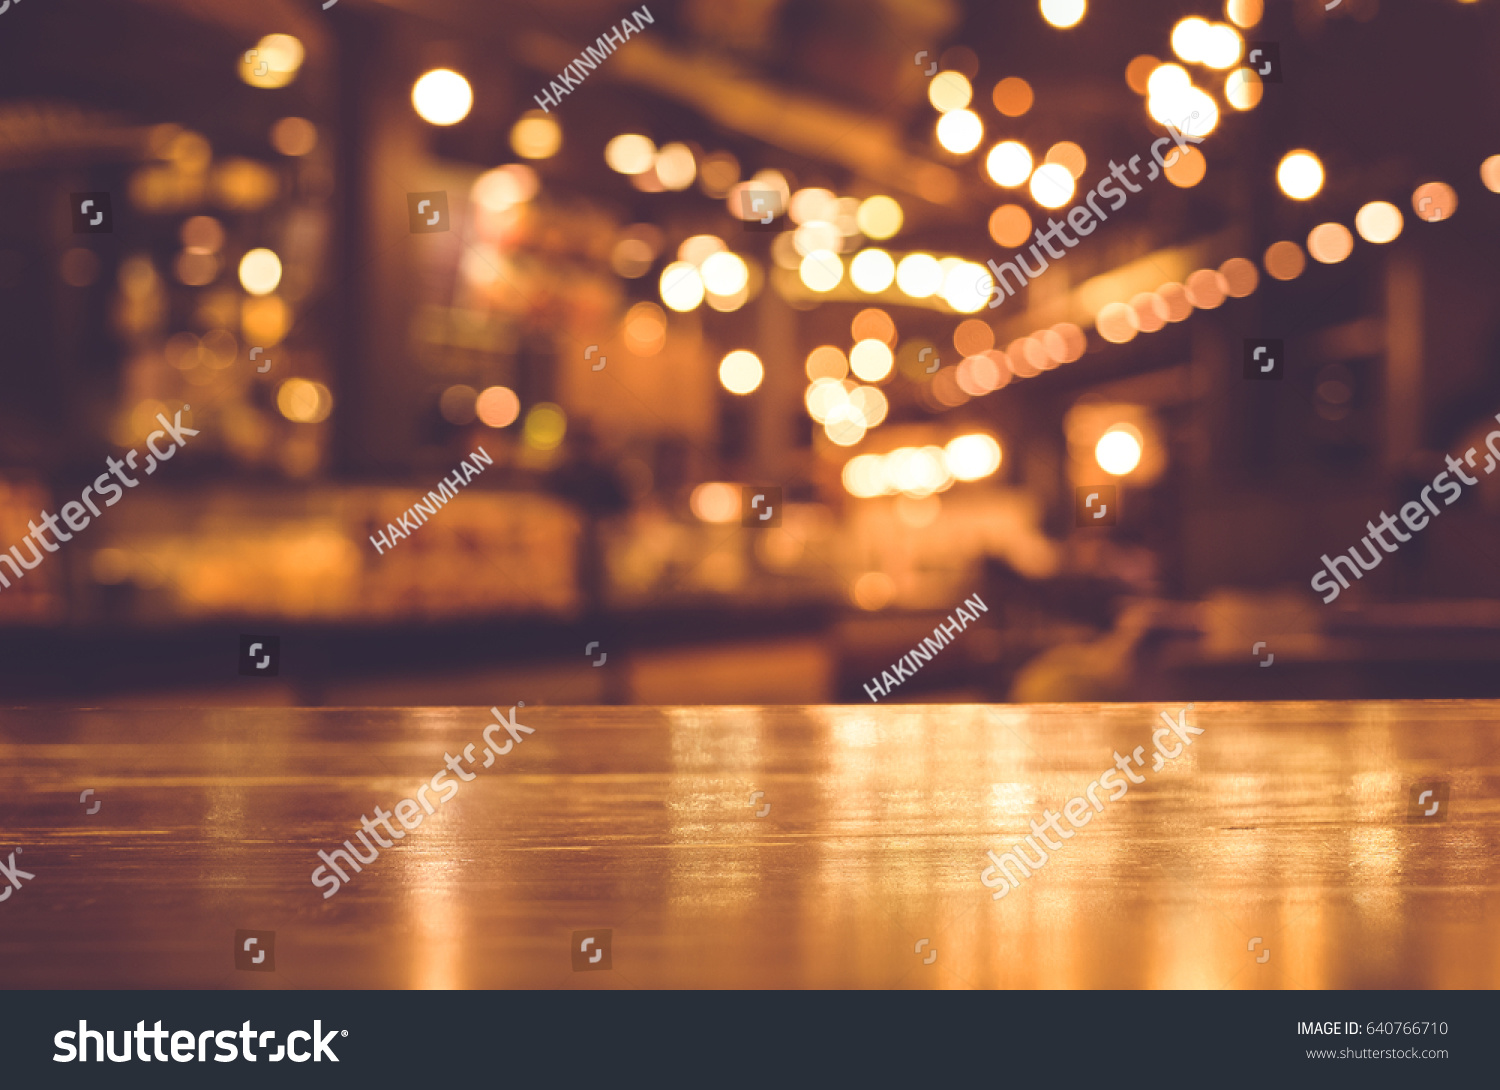 restaurant table top lighting. Wood Table Top With Reflect On Blur Of Lighting In Night Cafe,restaurant Background/ Restaurant Y